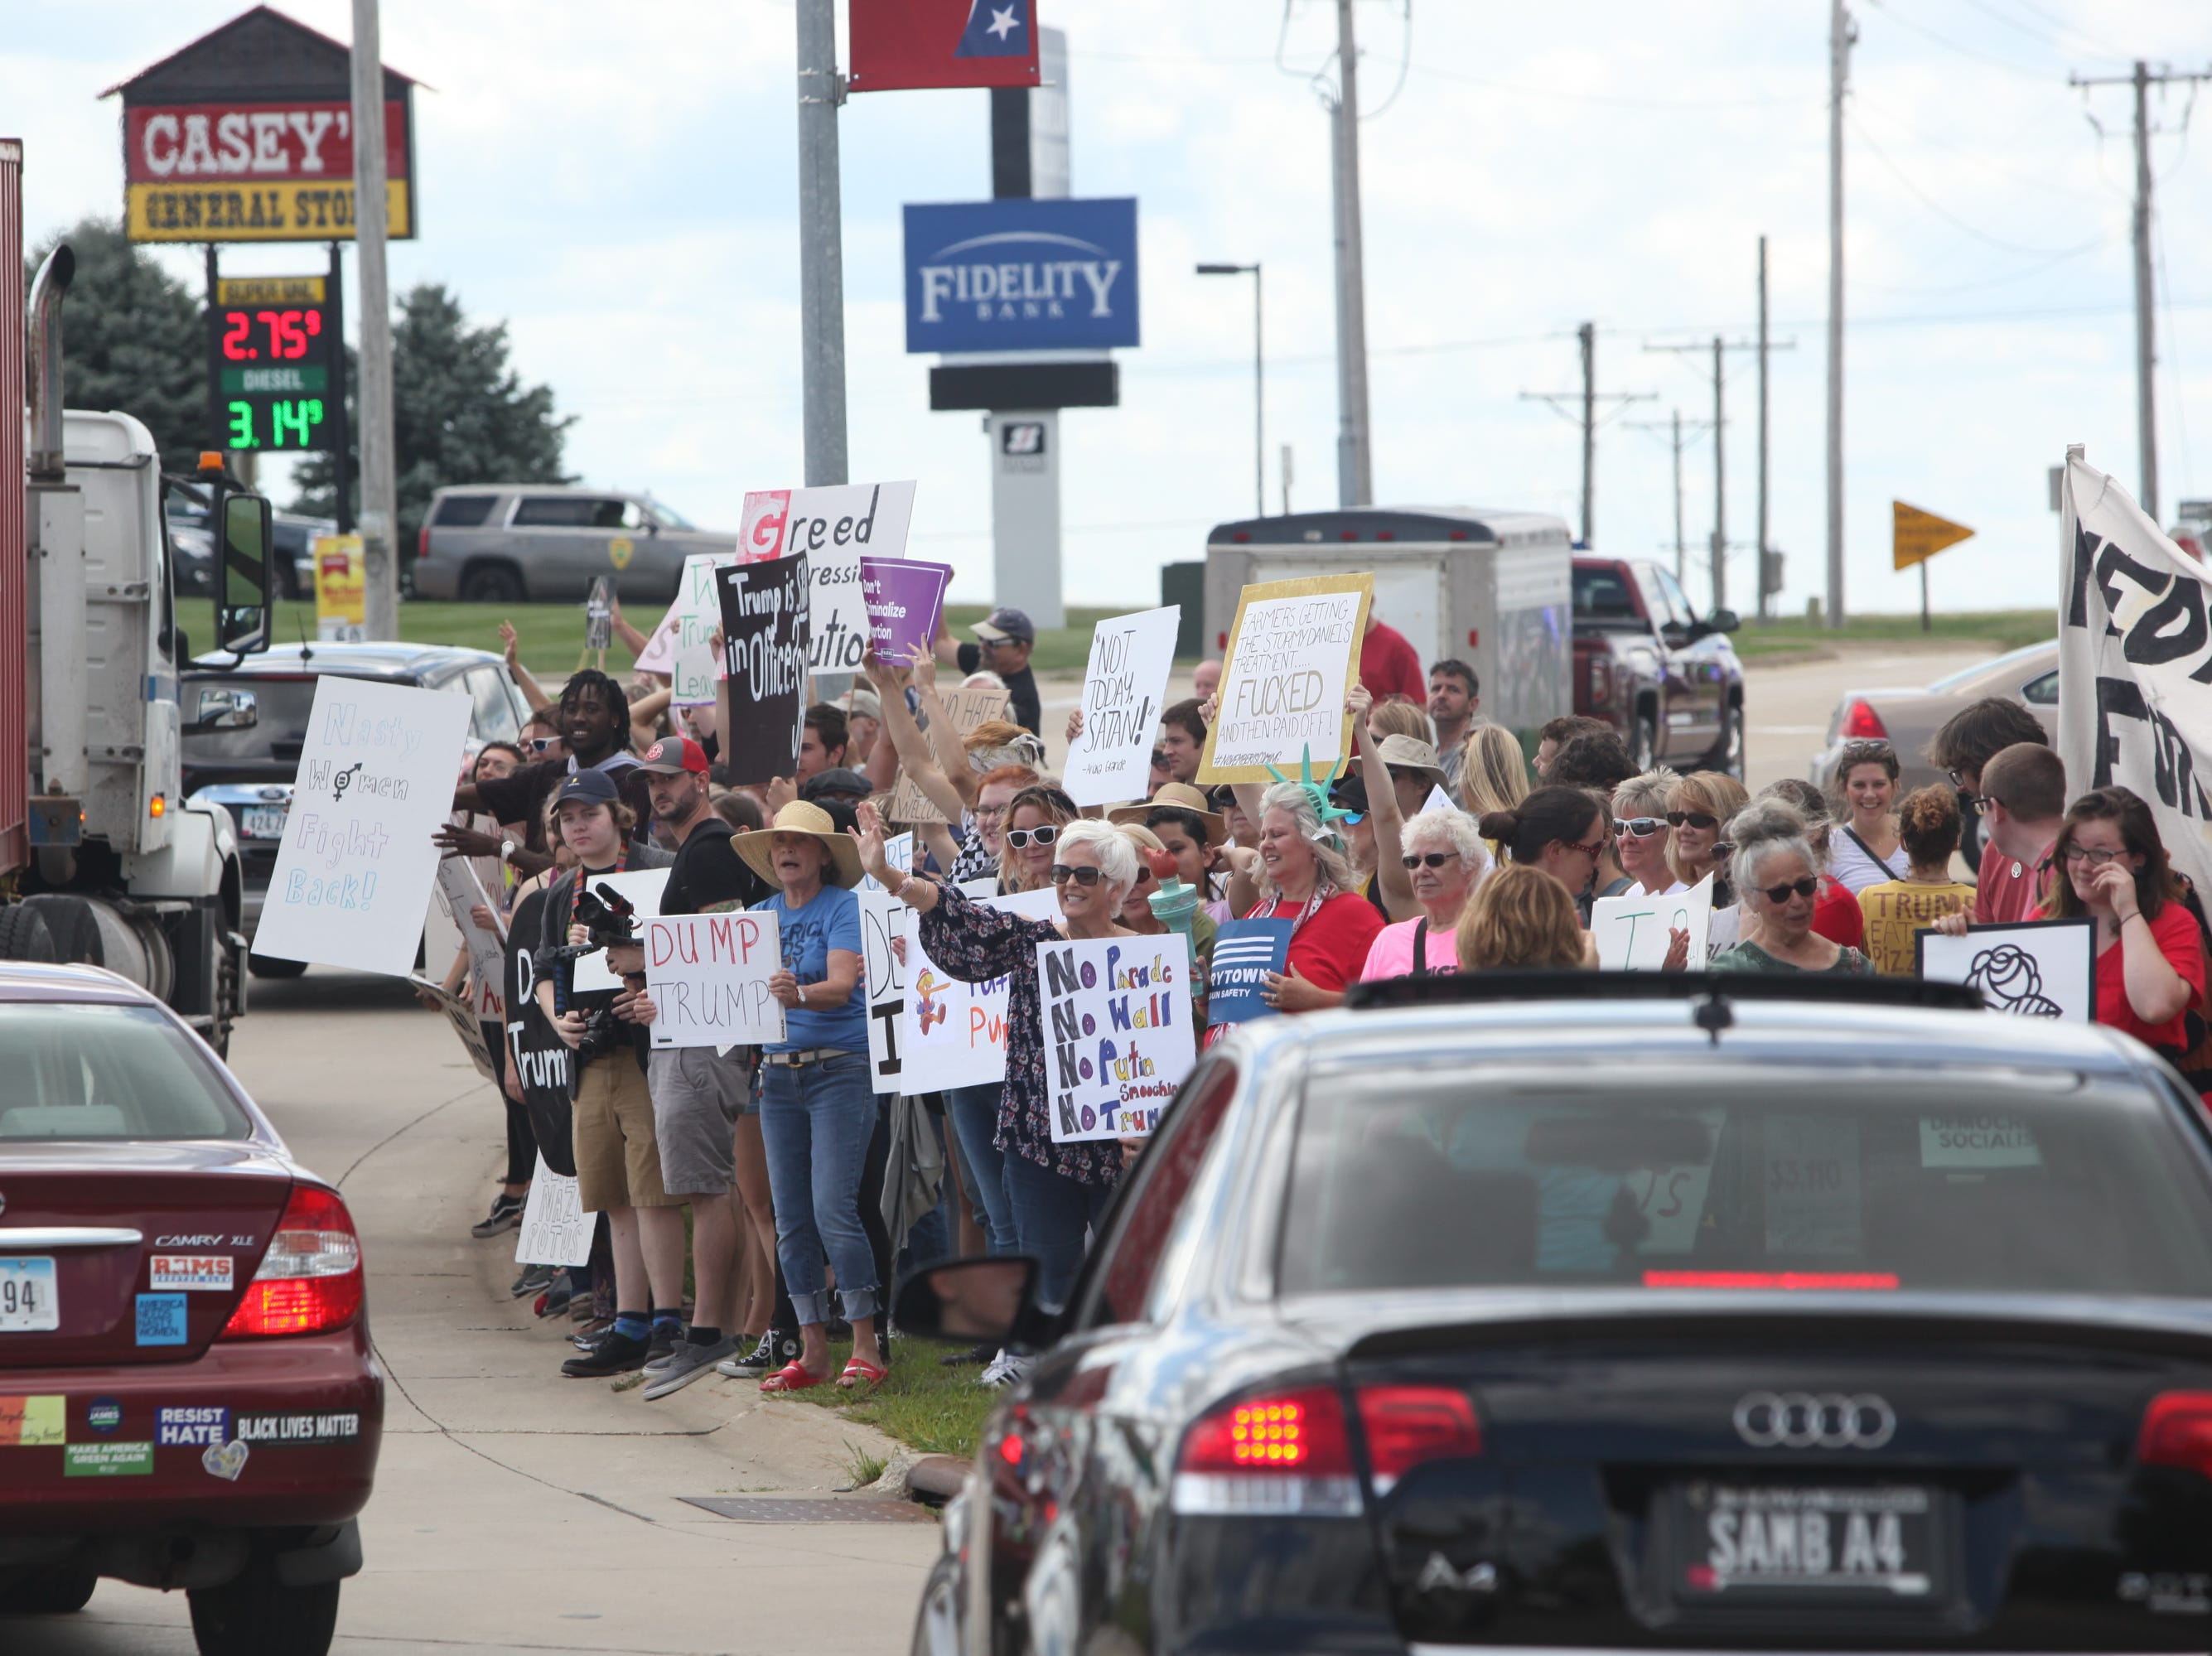 Demonstrators protest President Donald Trump's visit to Northeast Iowa Community College in Peosta, Iowa, on Thursday, July 26, 2018. Law enforcement officials estimated about 500 people gathered outside as Trump participated in a roundtable discussion about workforce development.